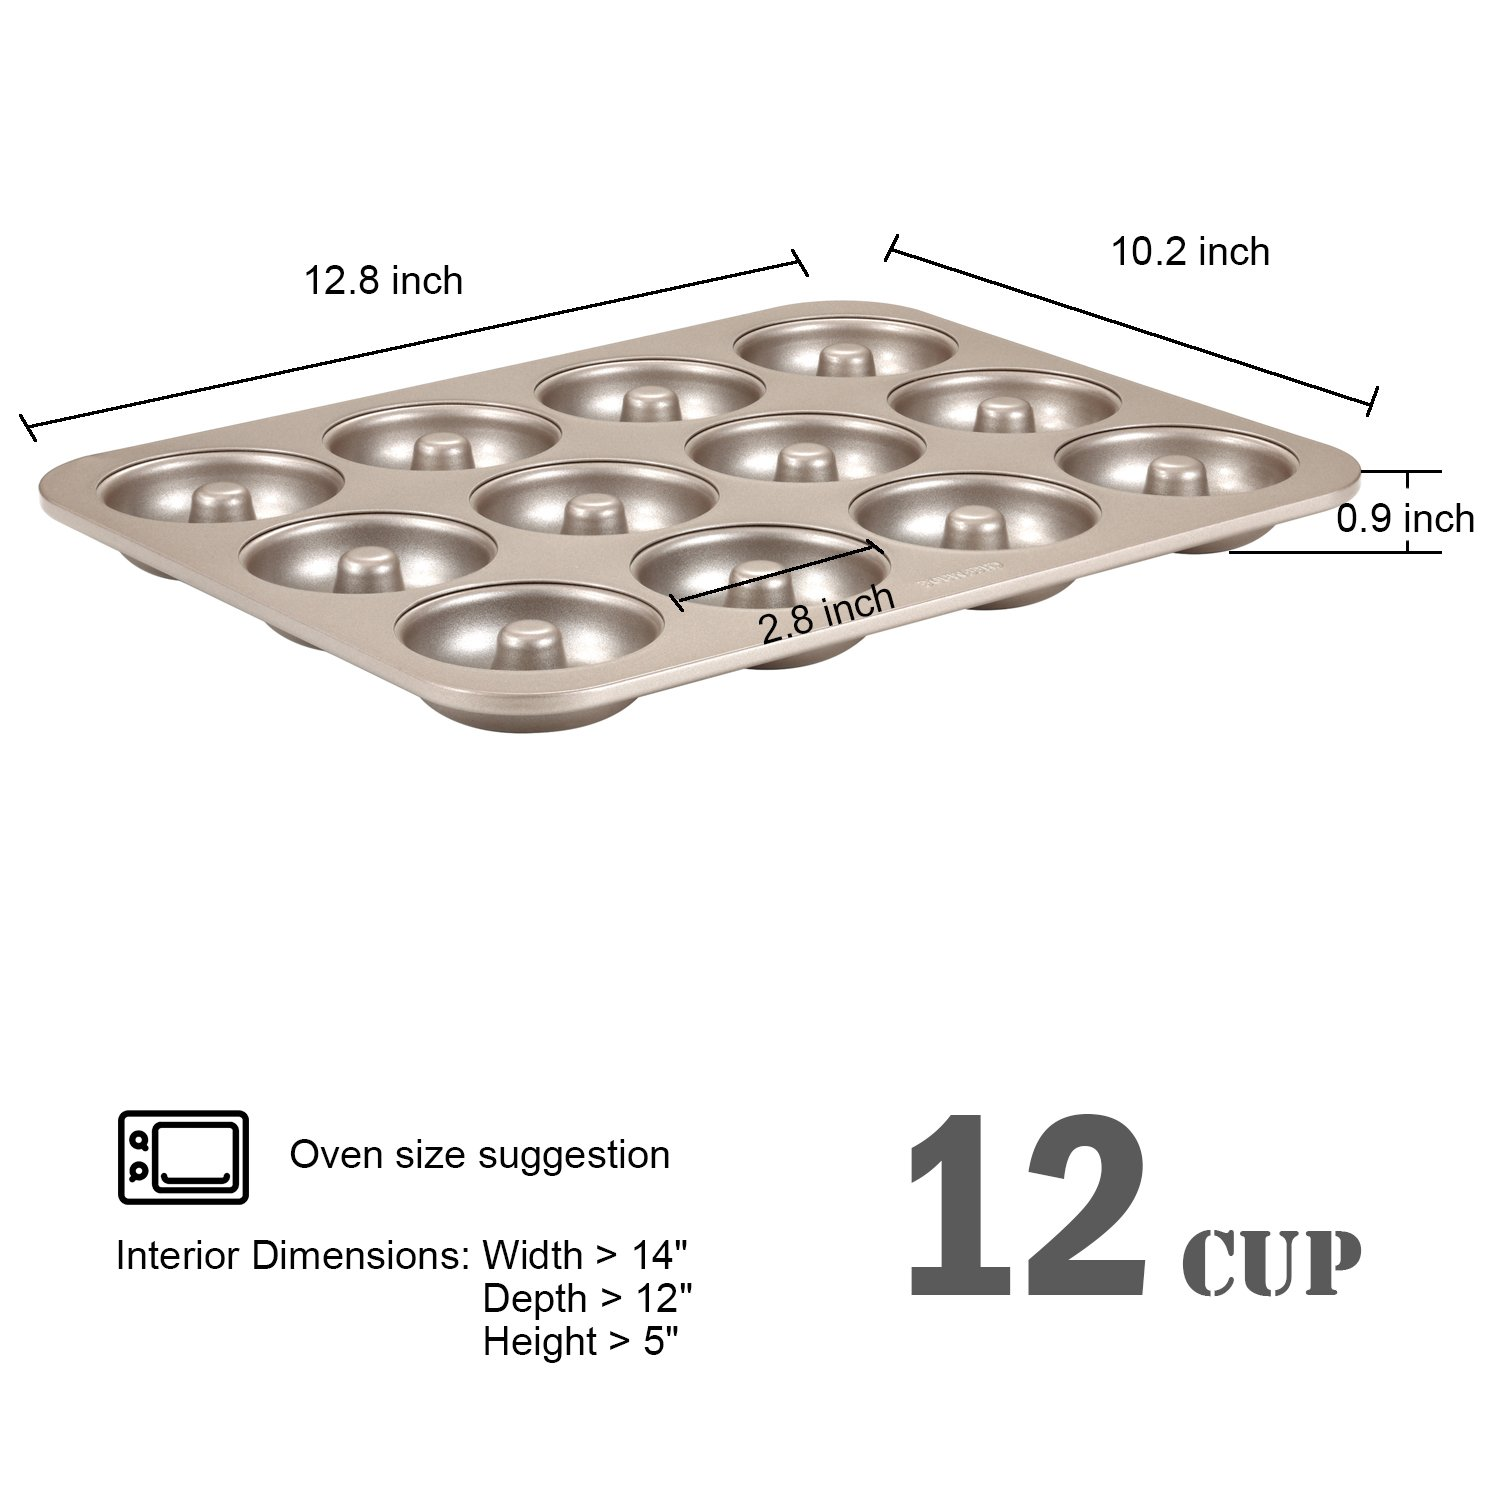 CHEFMADE Donut Mold Cake Pan, 12-Cavity Non-Stick Ring Doughnut Bakeware, FDA Approved for Oven Baking (Champagne Gold) by CHEFMADE (Image #2)